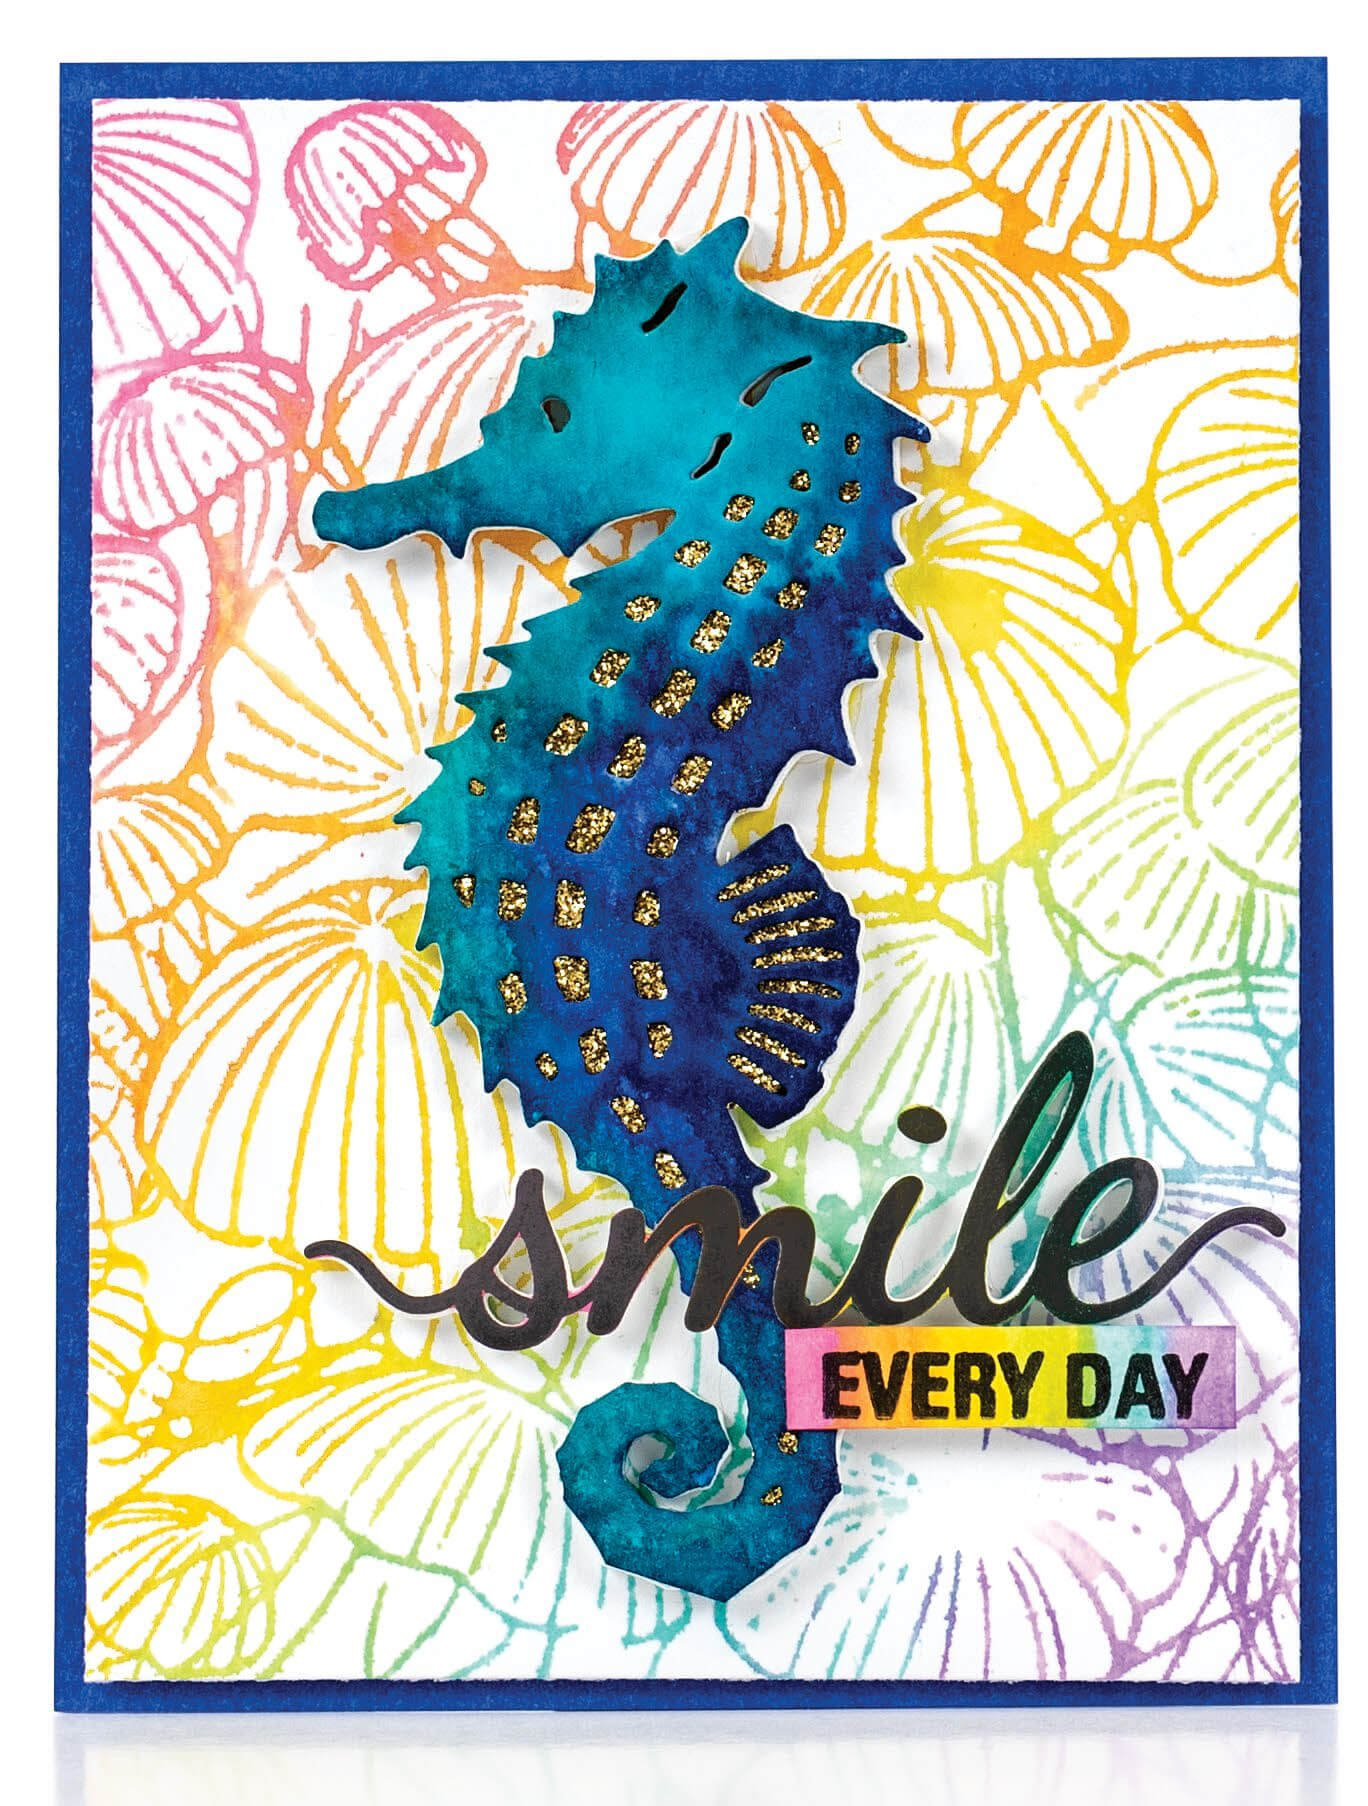 Scrapbook & Cards Today - Summer 2019 - Smile Every Day card by Jenn Shurkus